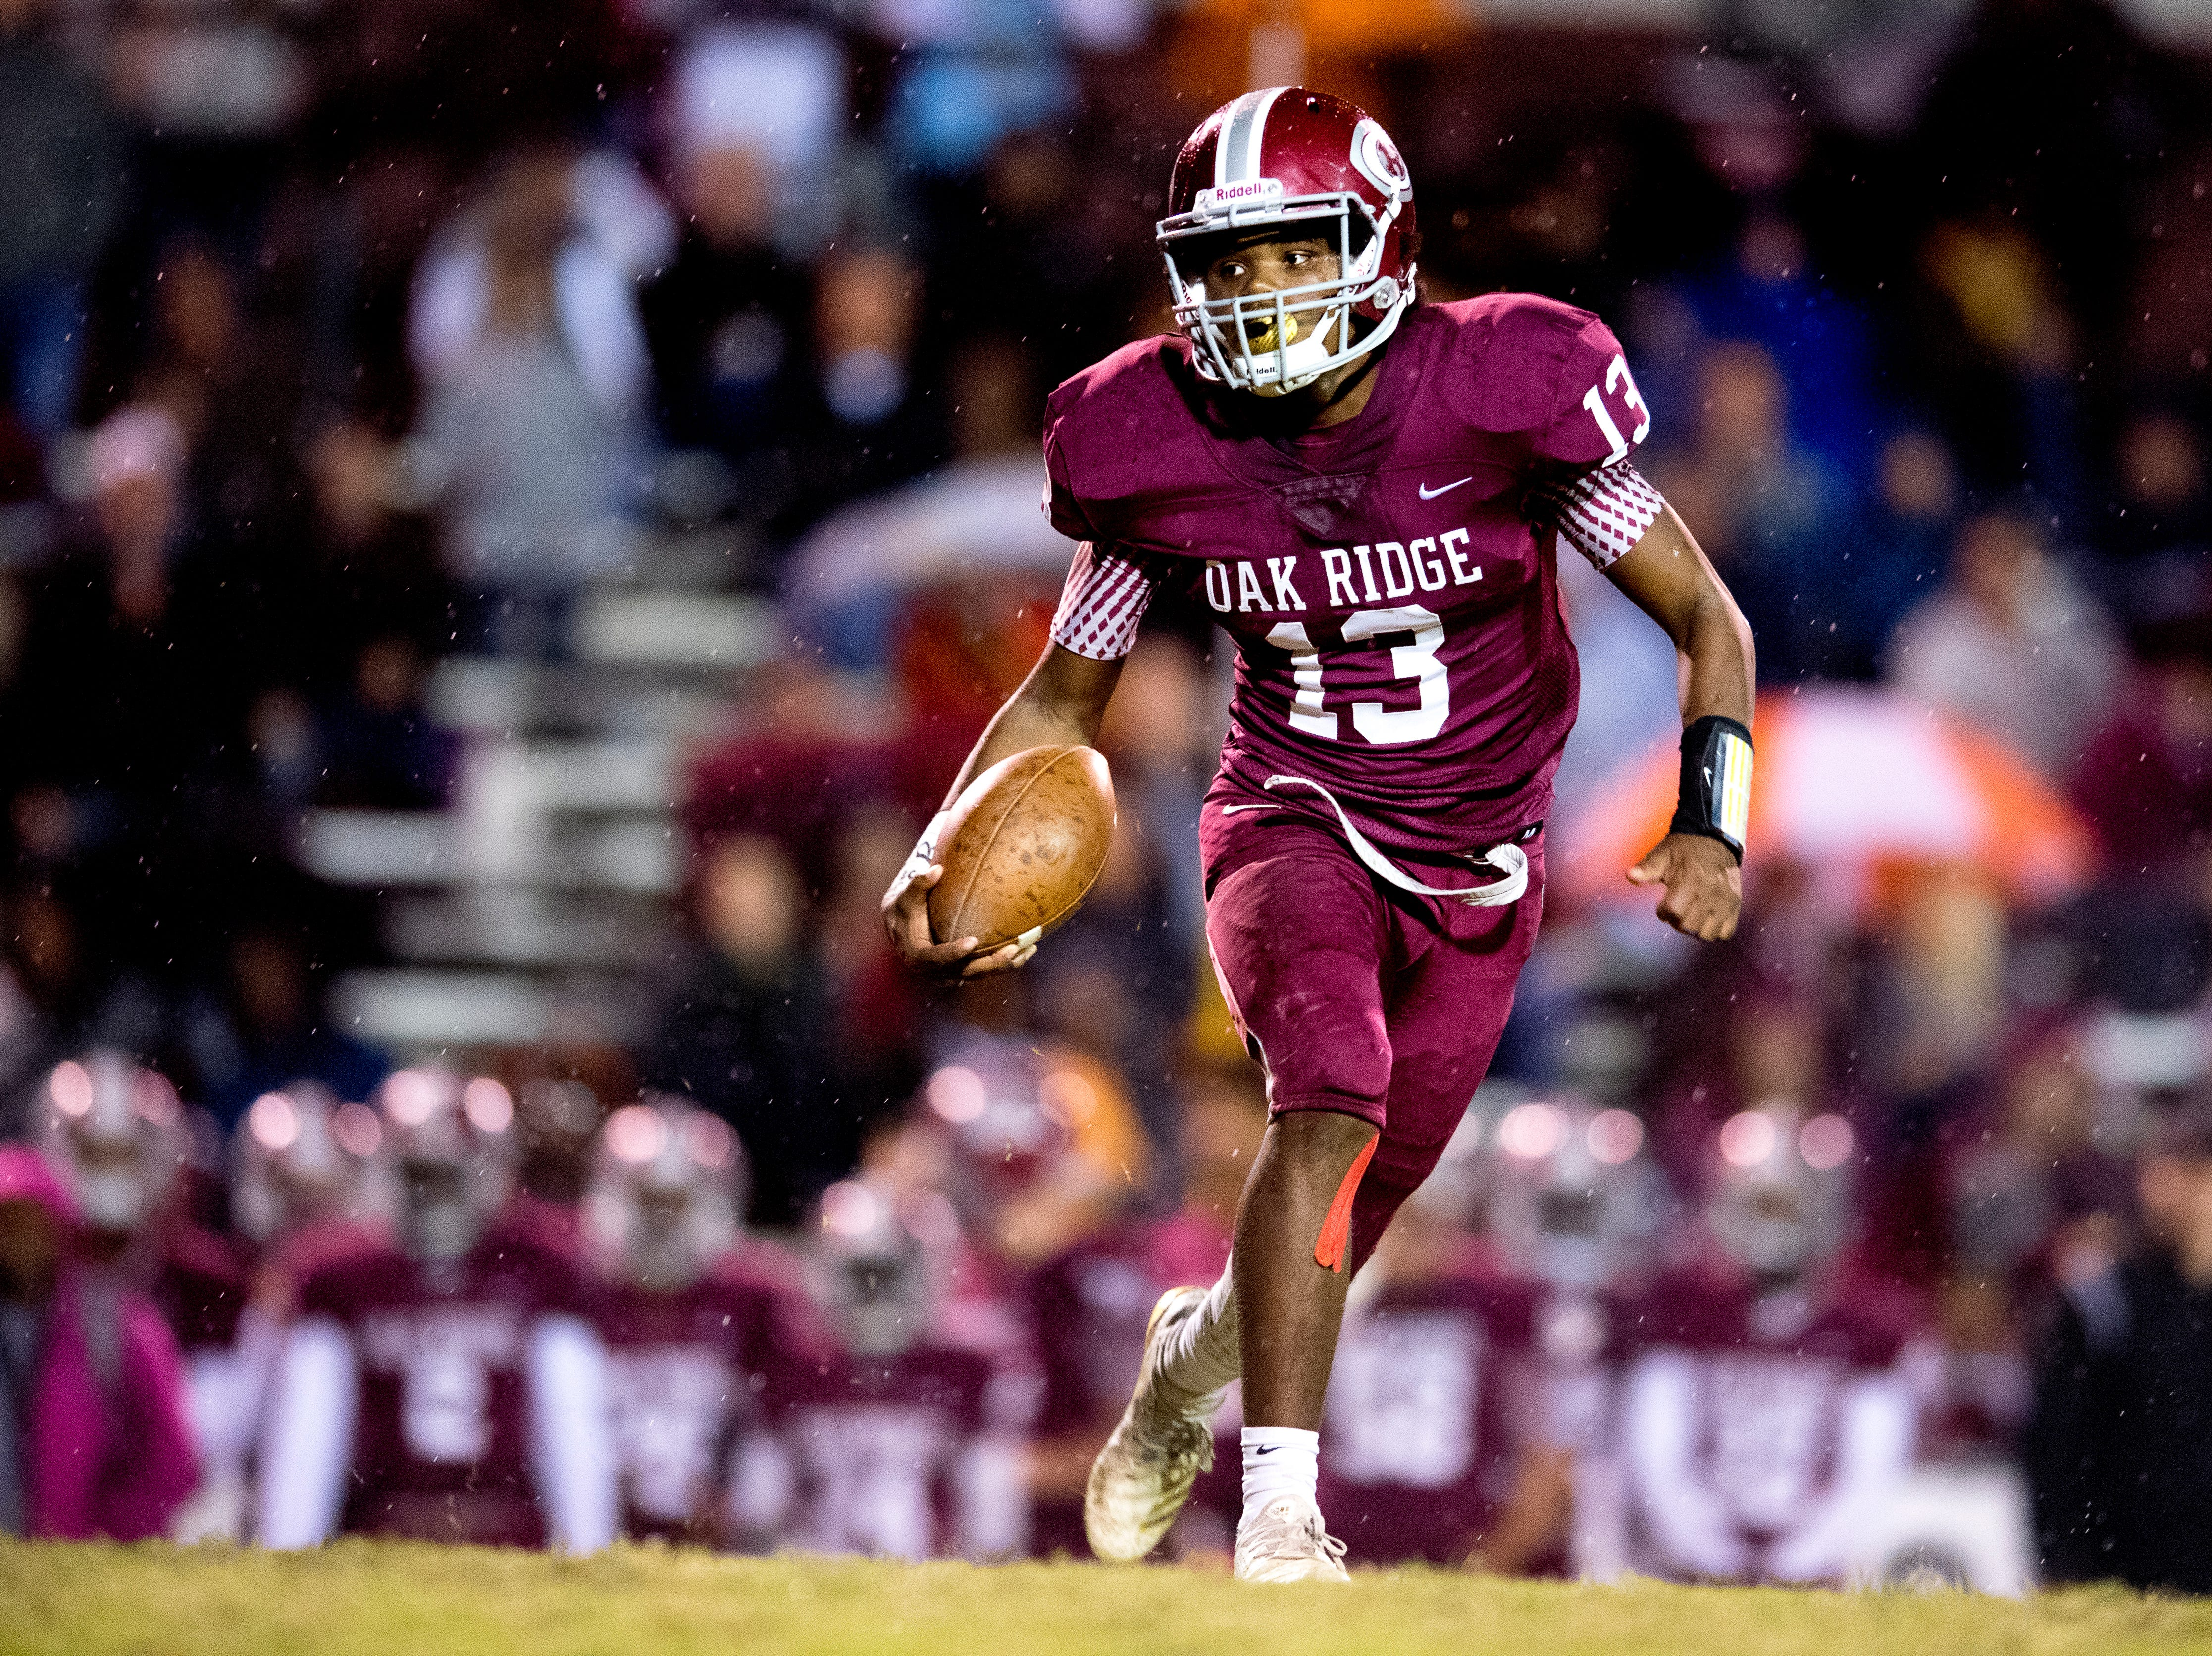 Oak Ridge's Herbert Booker (13) runs with the ball down the field during a football game between Oak Ridge and Fulton at Blankenship Field in Oak Ridge, Tennessee on Thursday, October 25, 2018.